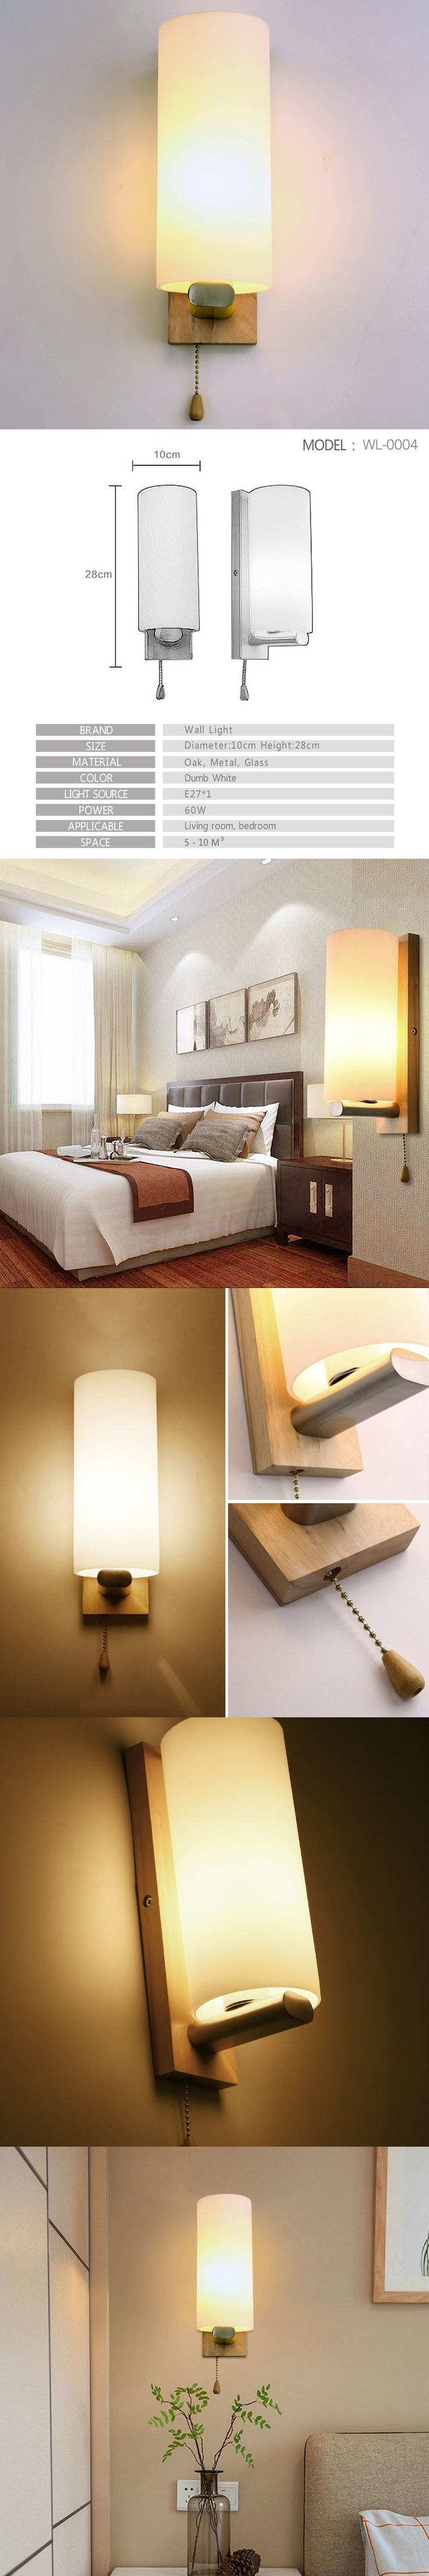 [MingBen] Modern LED wall lamps Bedroom Bedside Lamps Bathroom Night Light Wood+Glass E27 Socket 90-260V Decorate the walls